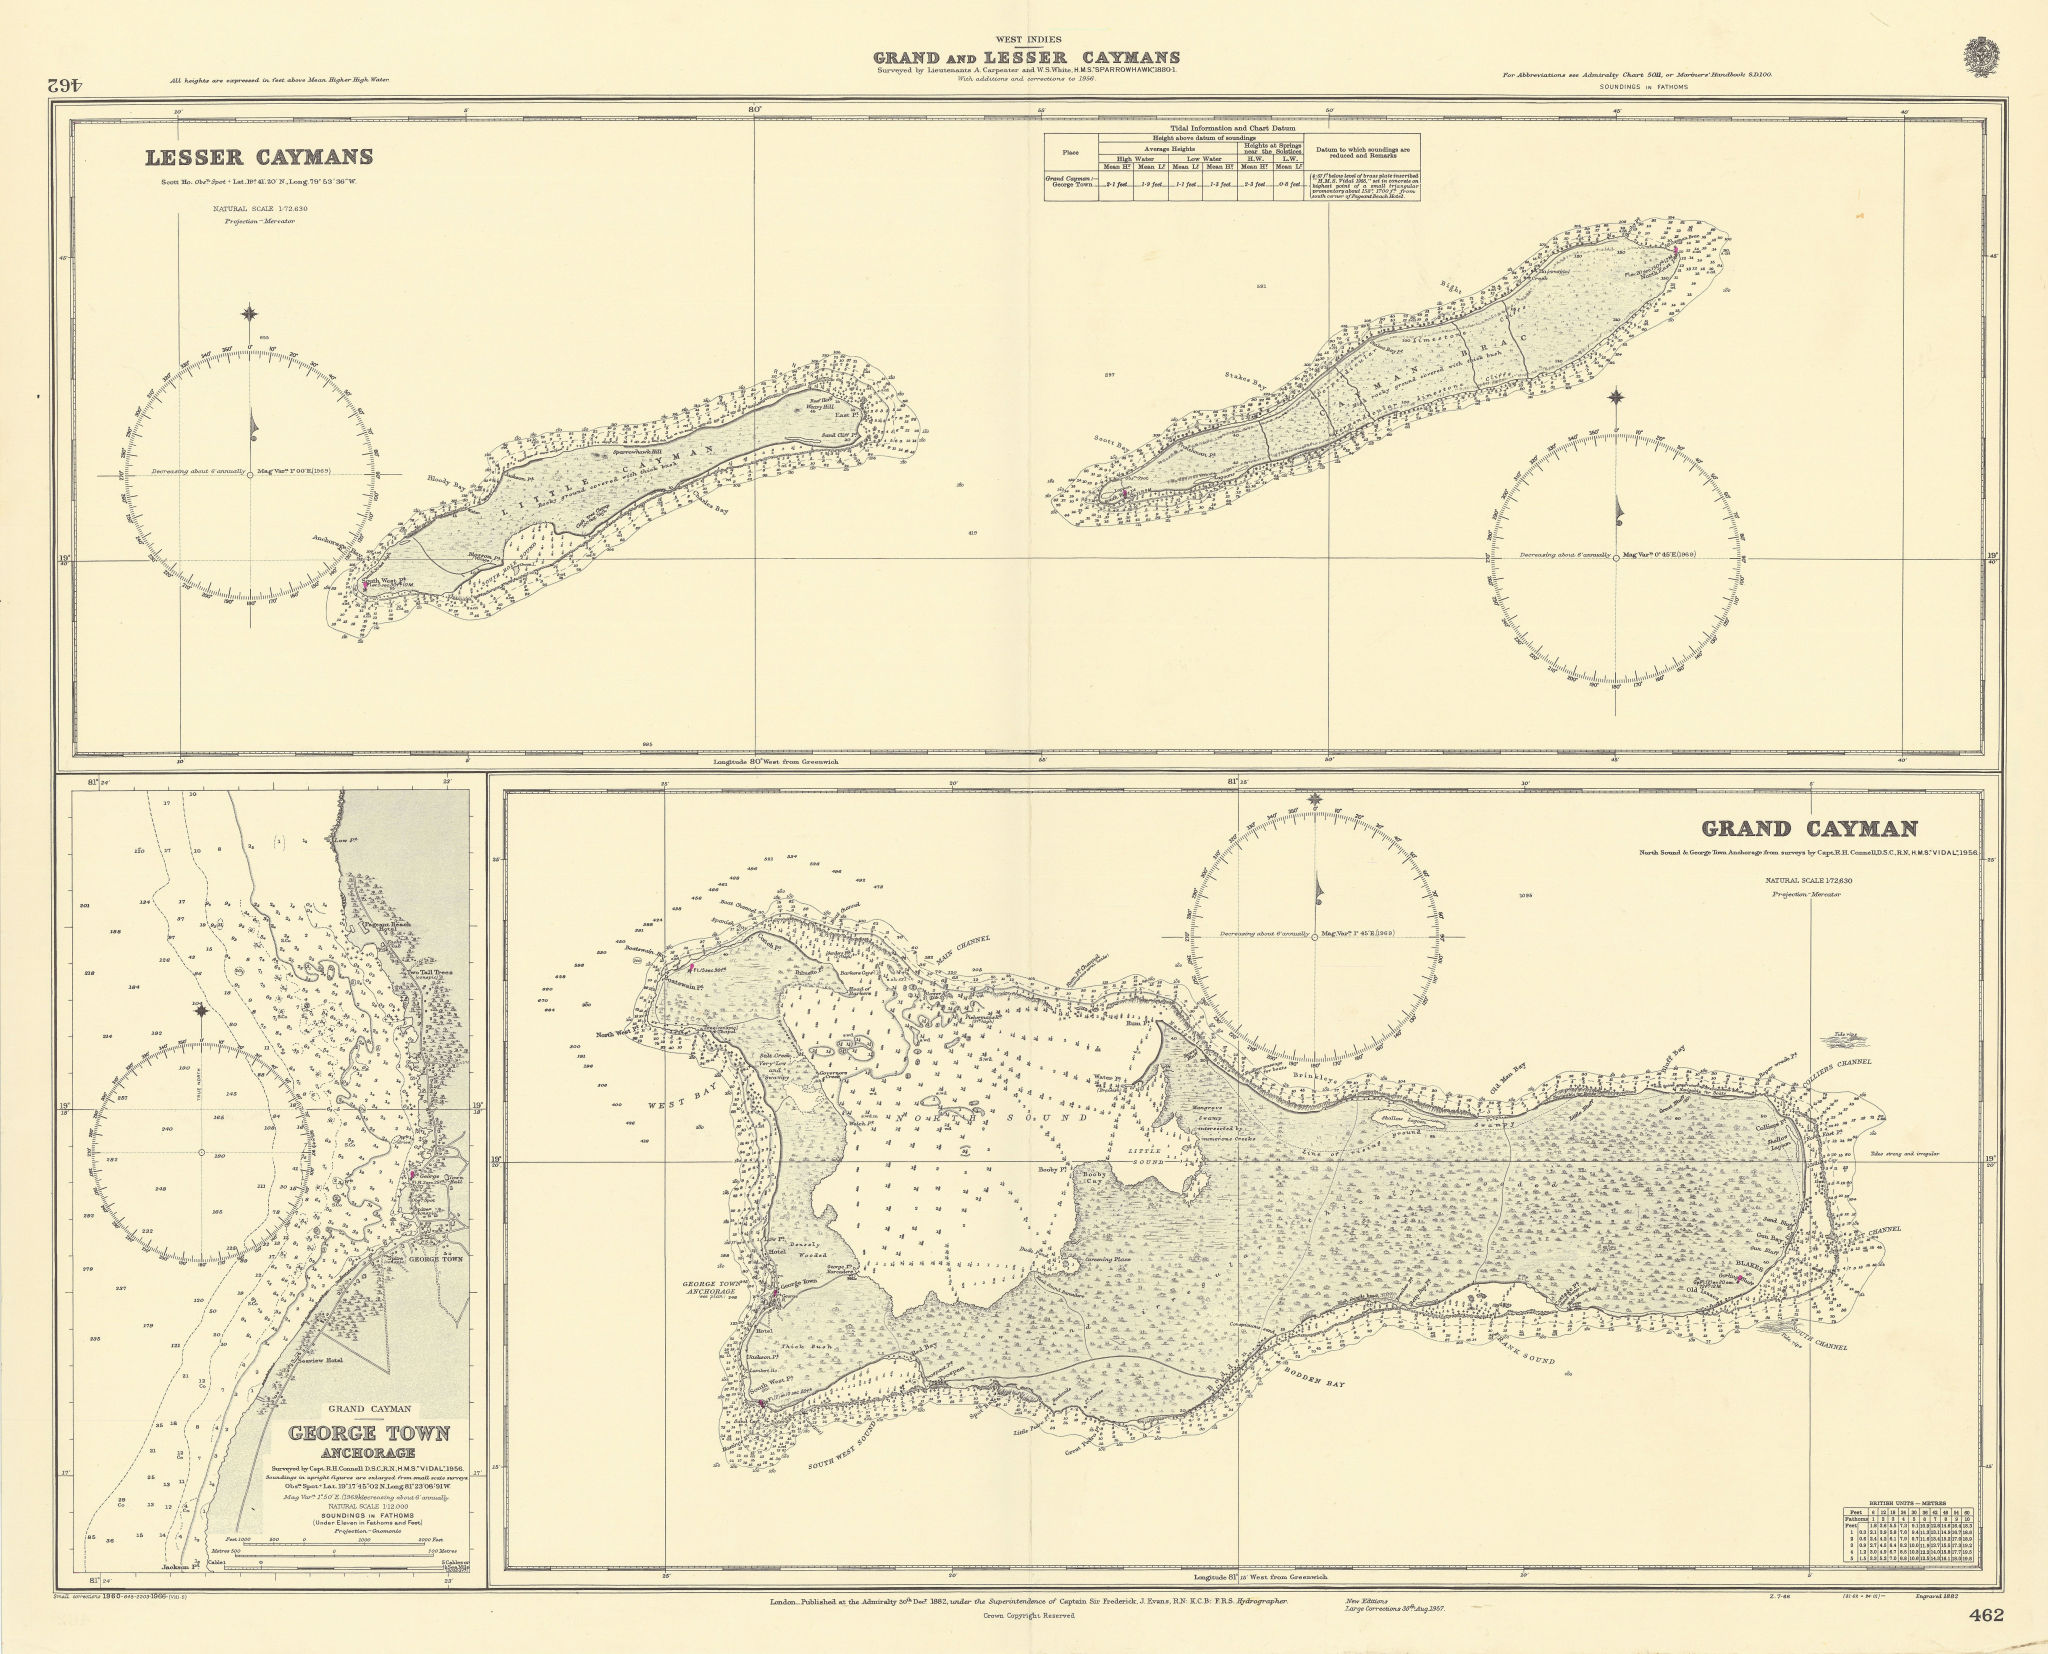 Cayman Islands Lesser Grand Caymans George Town ADMIRALTY chart 1882 (1966) map